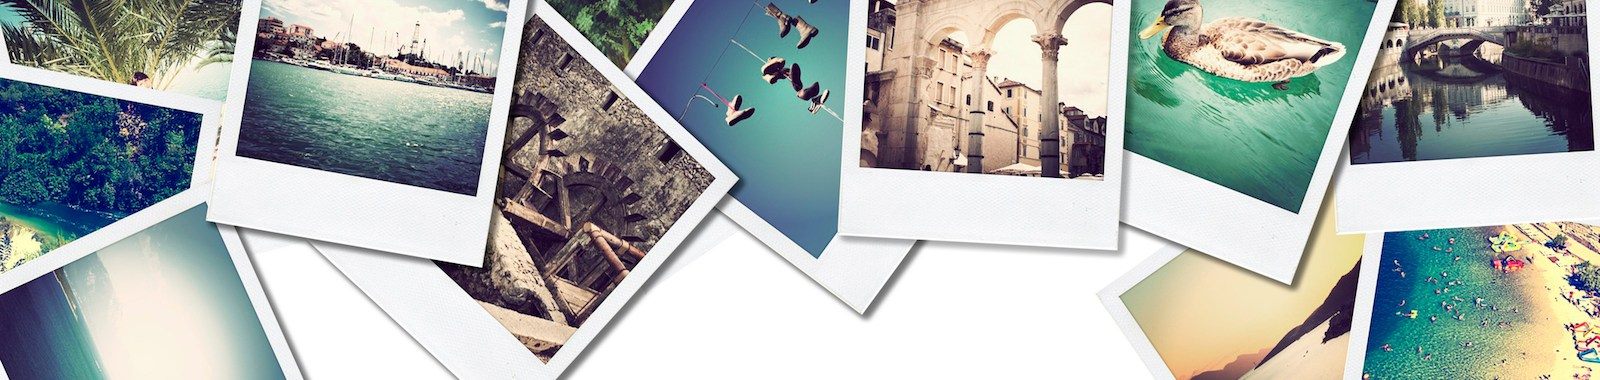 A pile of photographs with space for your logo or text.